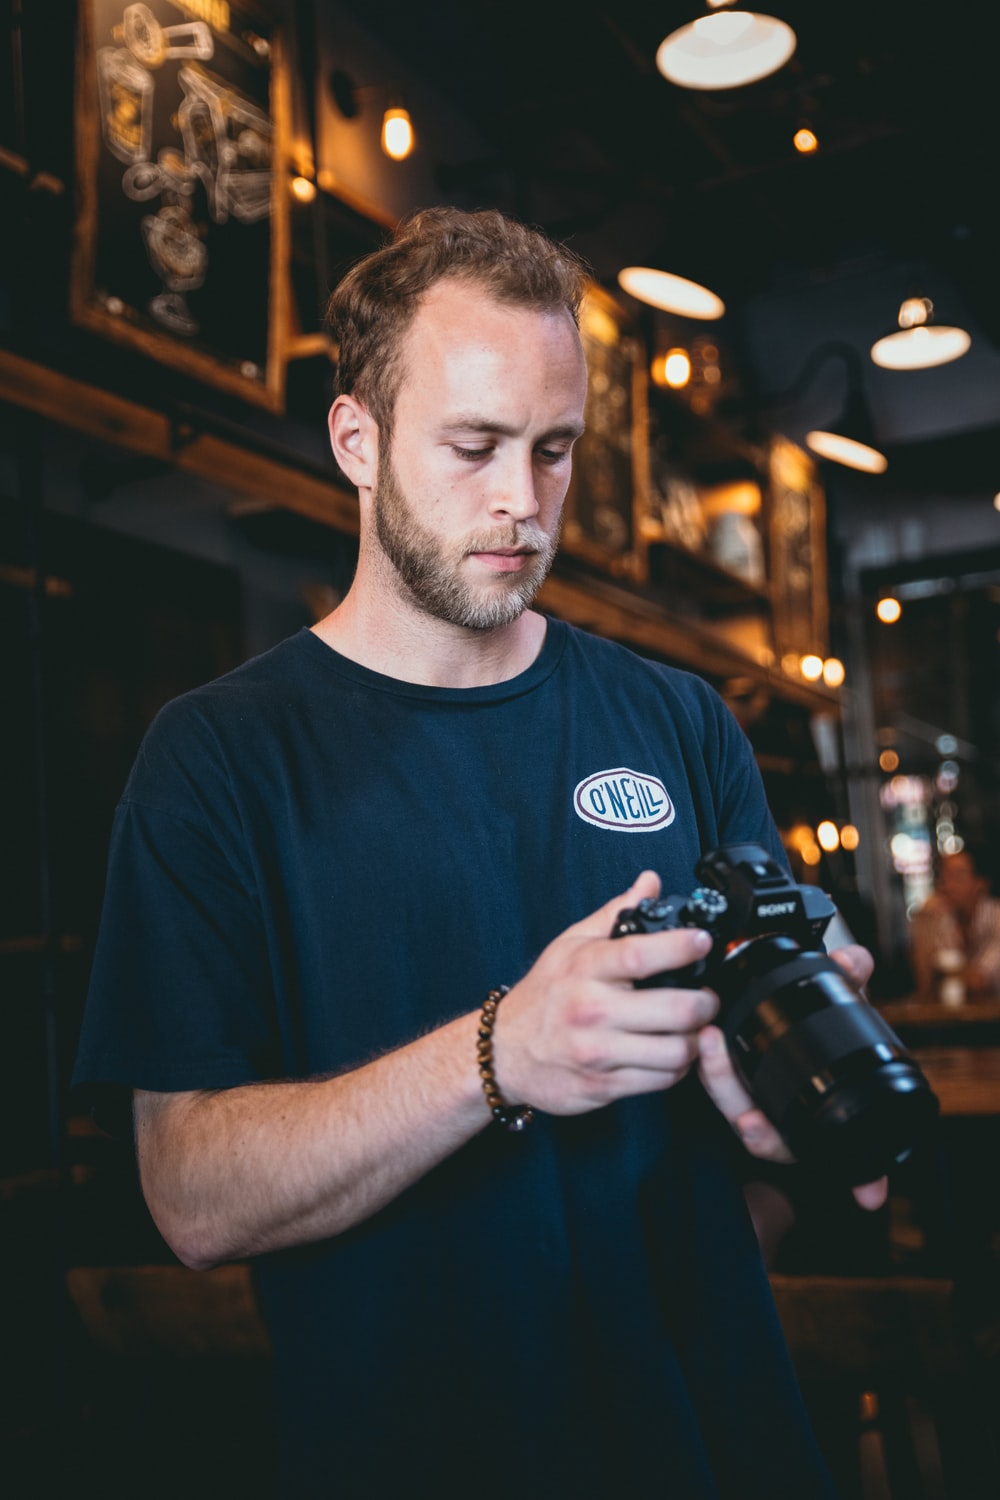 person holds DSLR camera